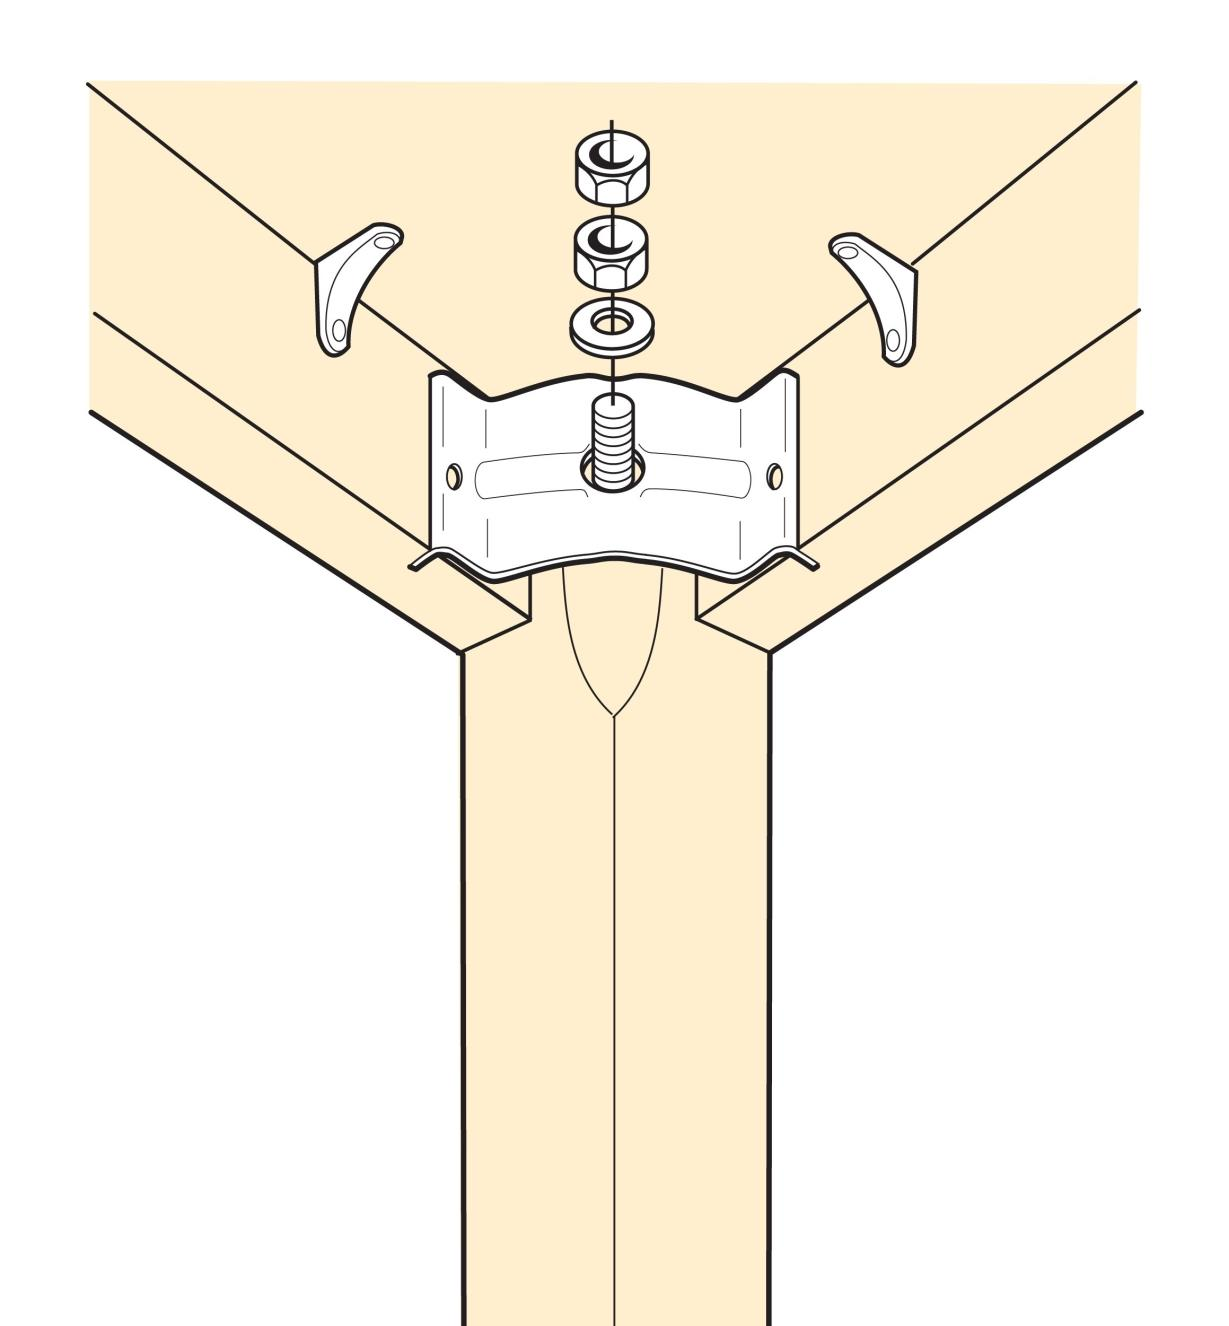 Illustration of Heavy-Duty Leg Brace installed in a table